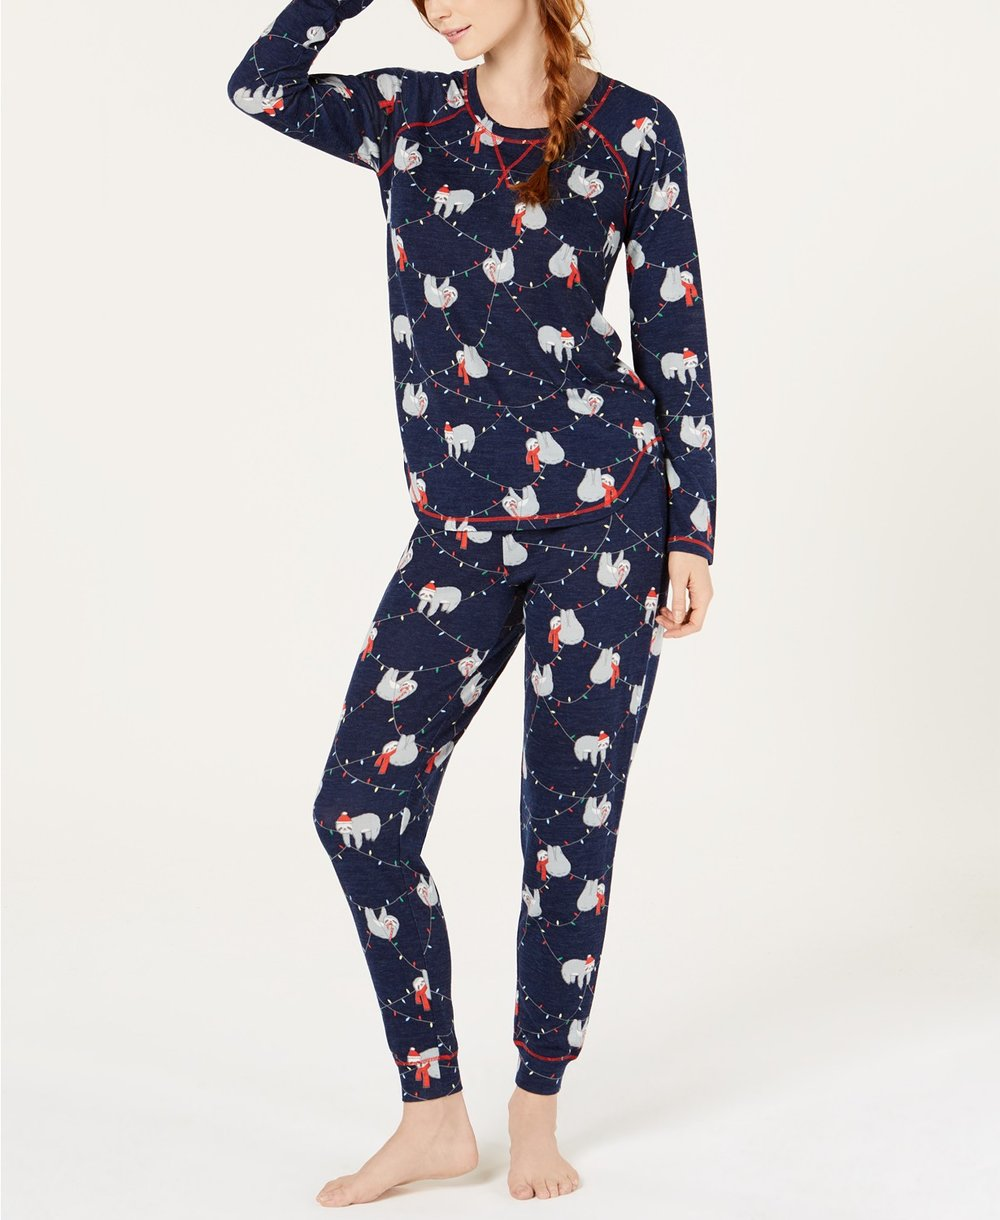 Macy's holiday pajamas